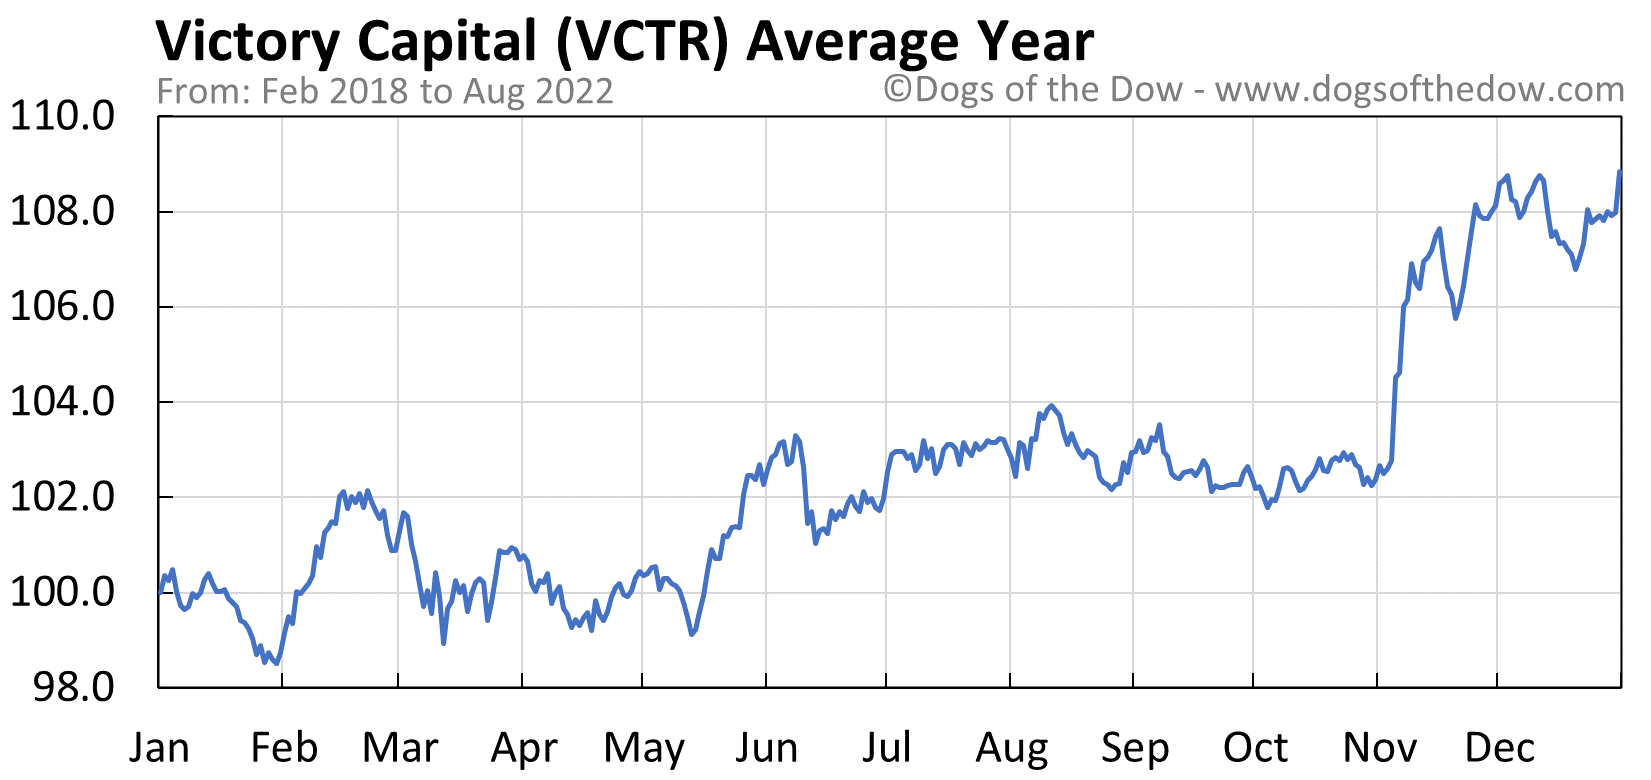 VCTR average year chart